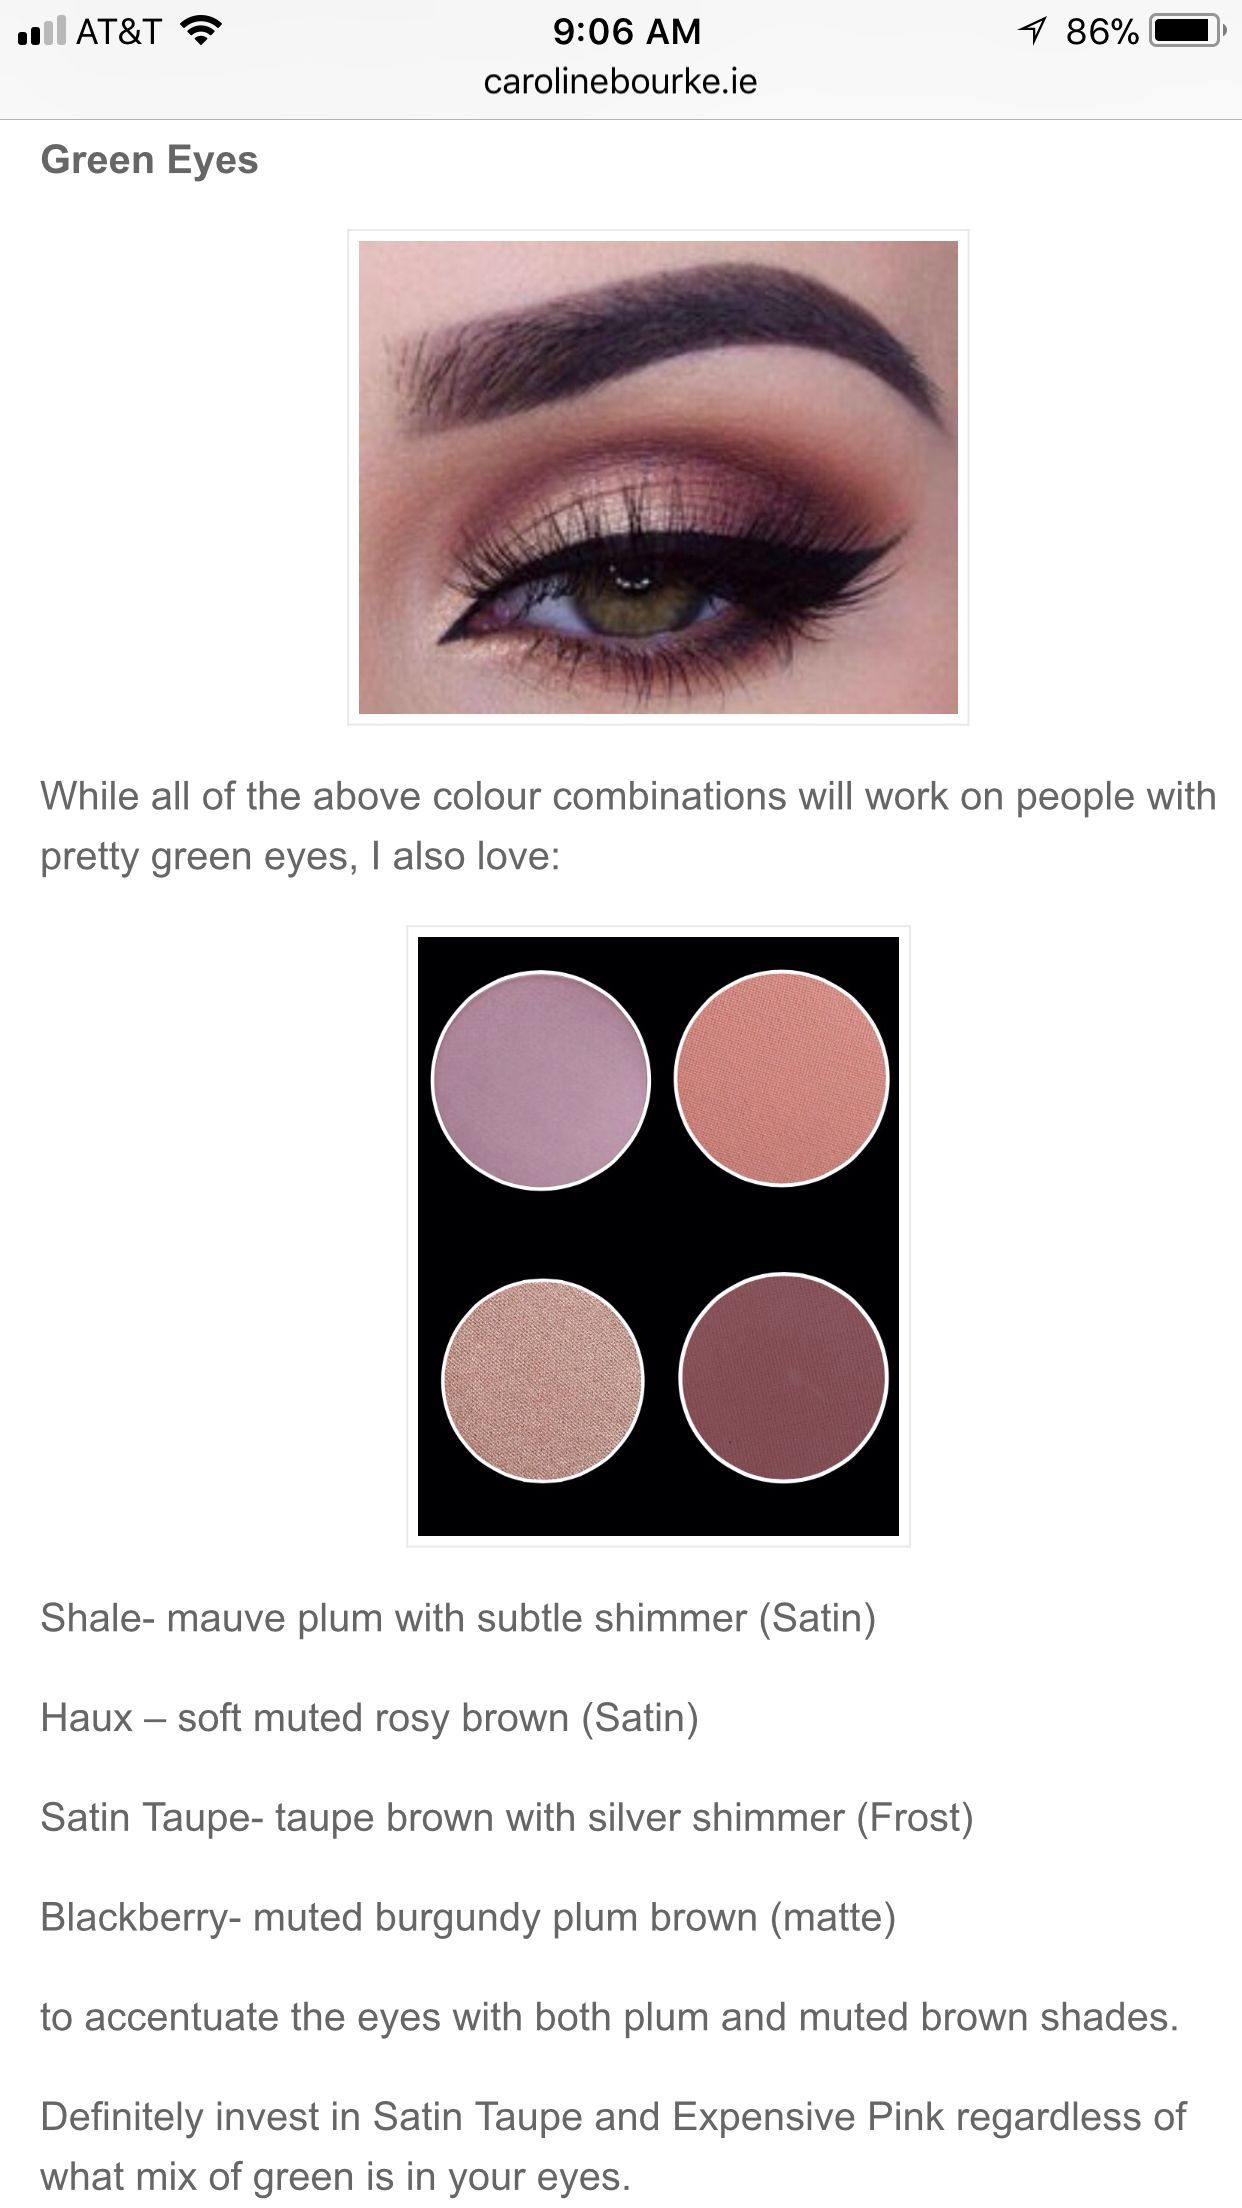 mac haux blackberry satin taupe on green eyes | rosy brown